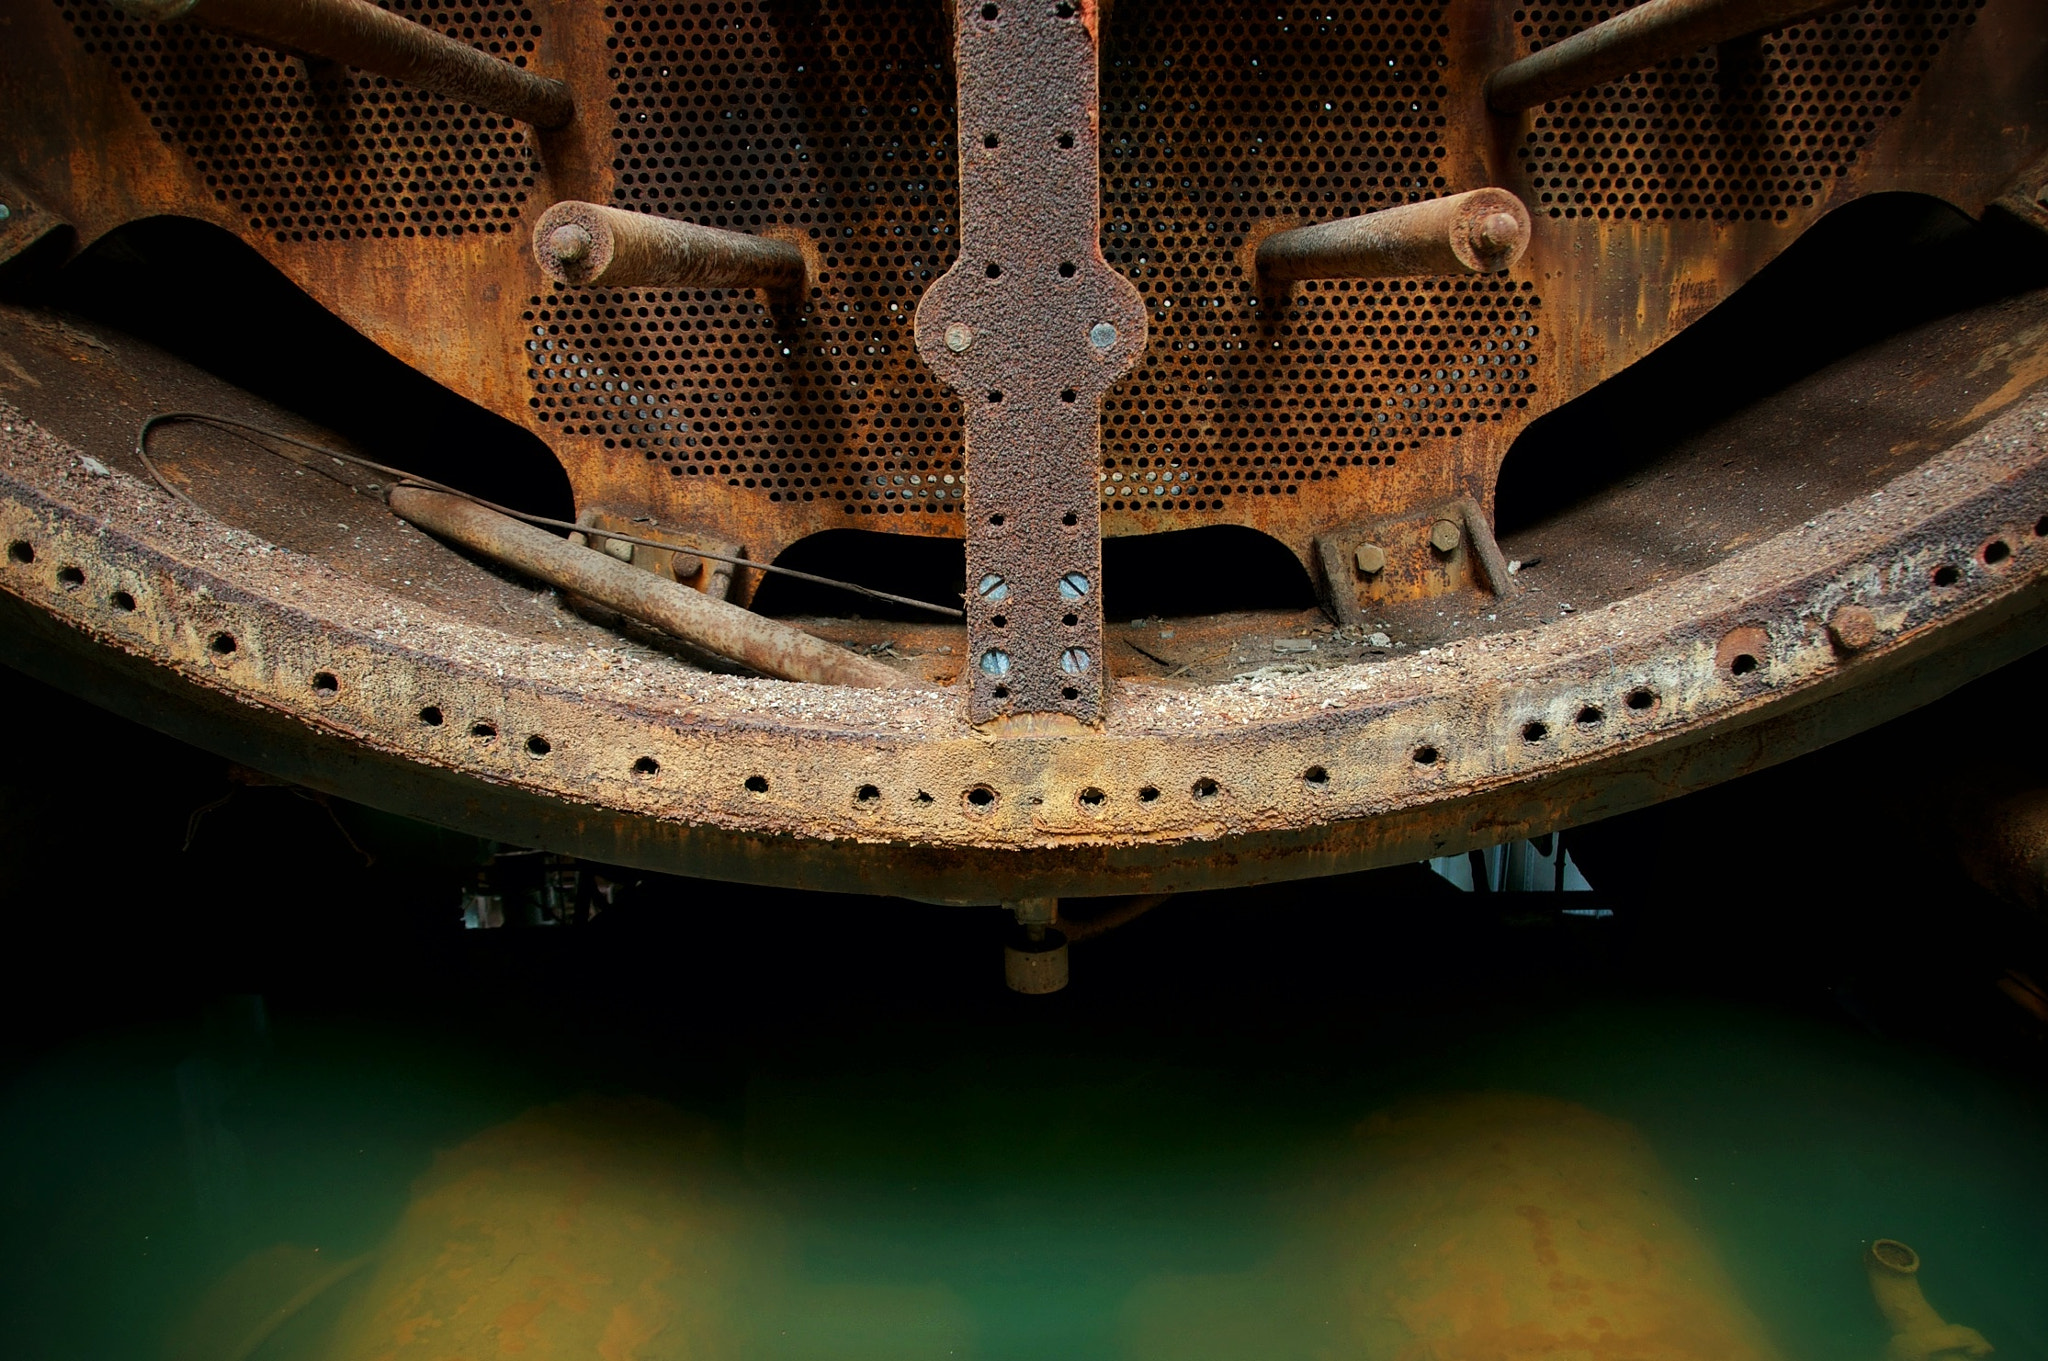 Photograph Water and Rust by Robert Francis on 500px